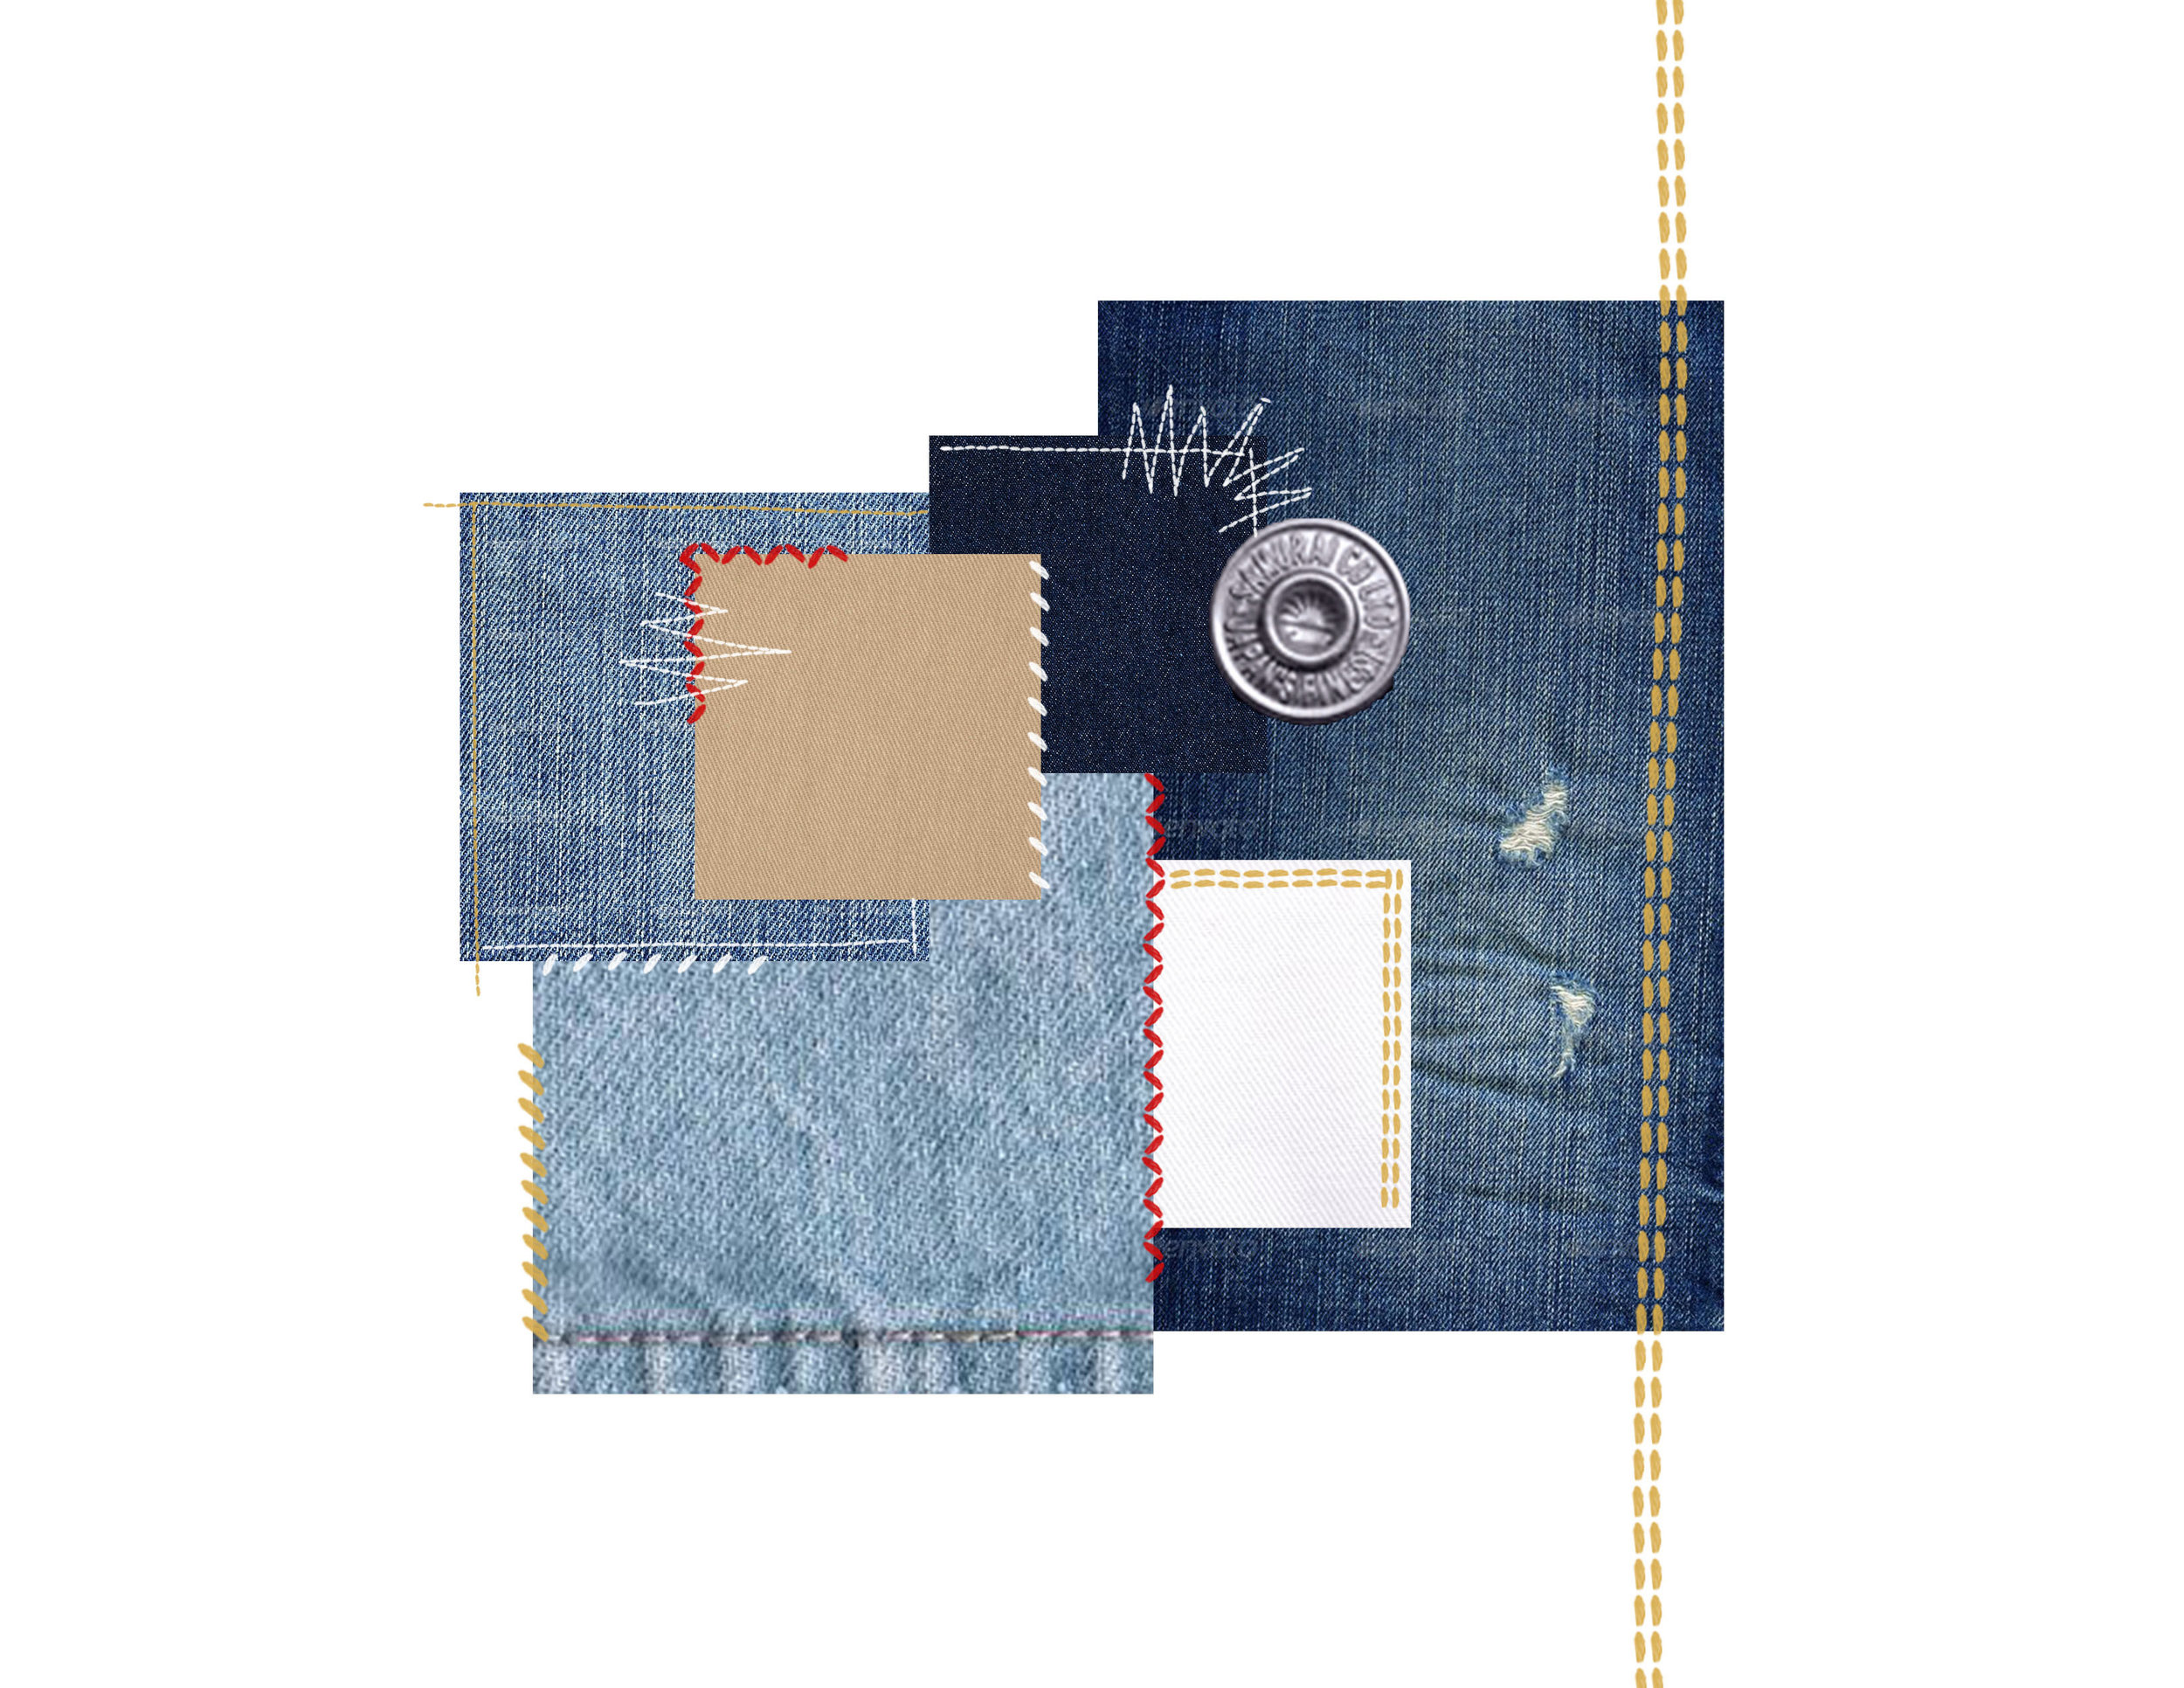 patchwork project_Page_02.jpg